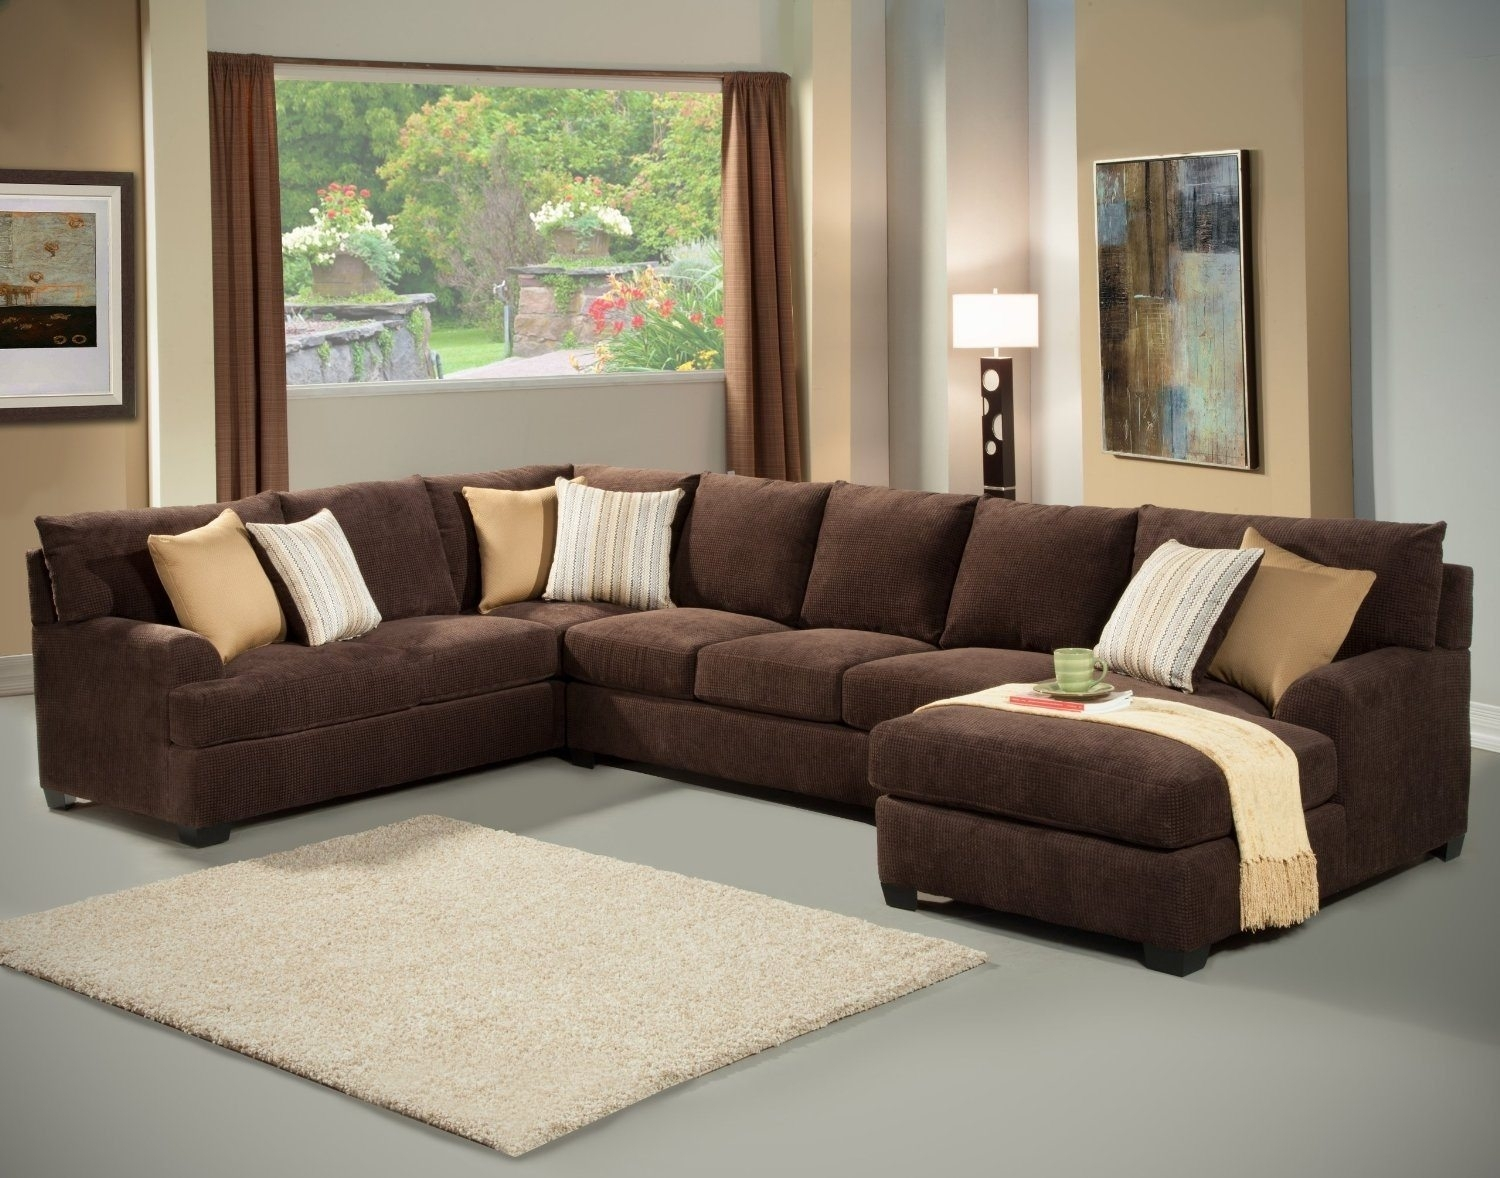 Furniture: American Freight Sectionals For Luxury Living Room Sofas in Evansville In Sectional Sofas (Image 4 of 10)